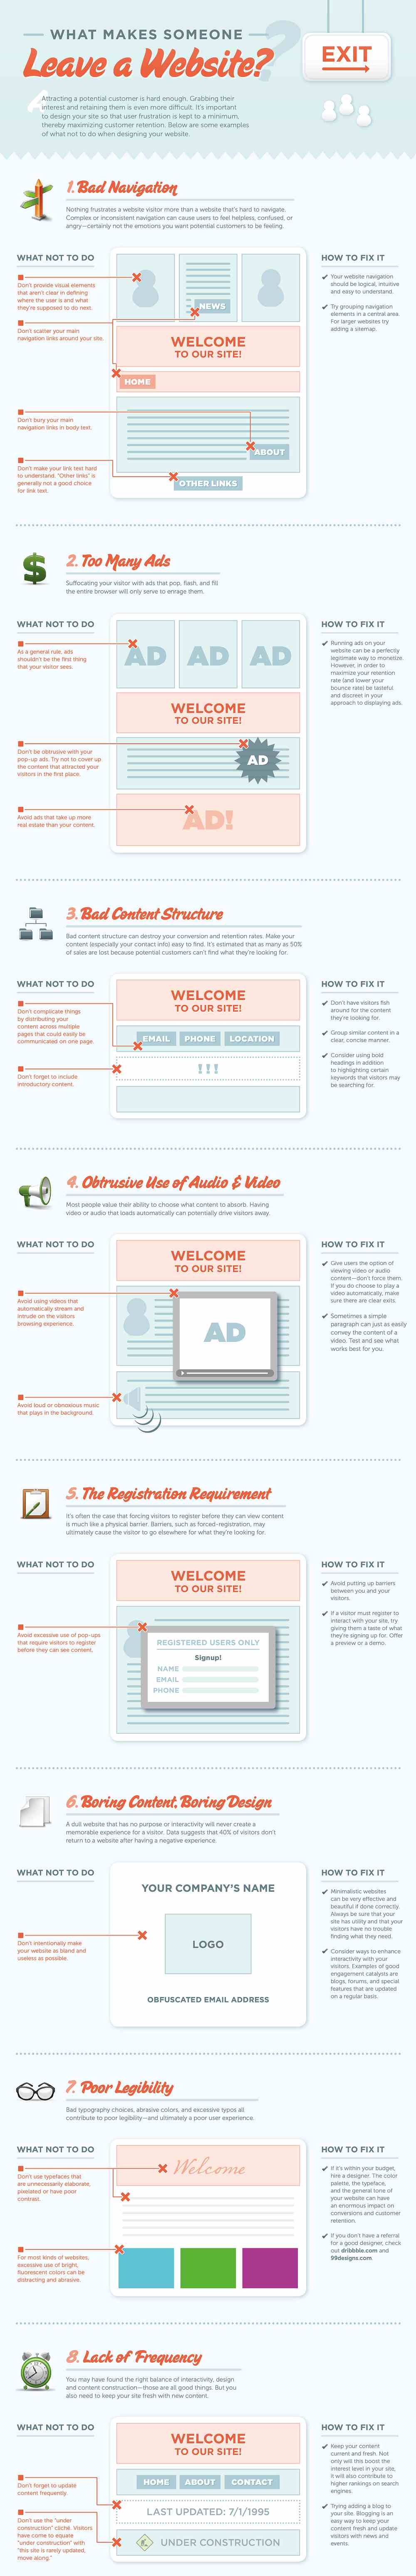 8 Reasons Why People Leave A Website Infographic Infographic Website Ontwerp Website